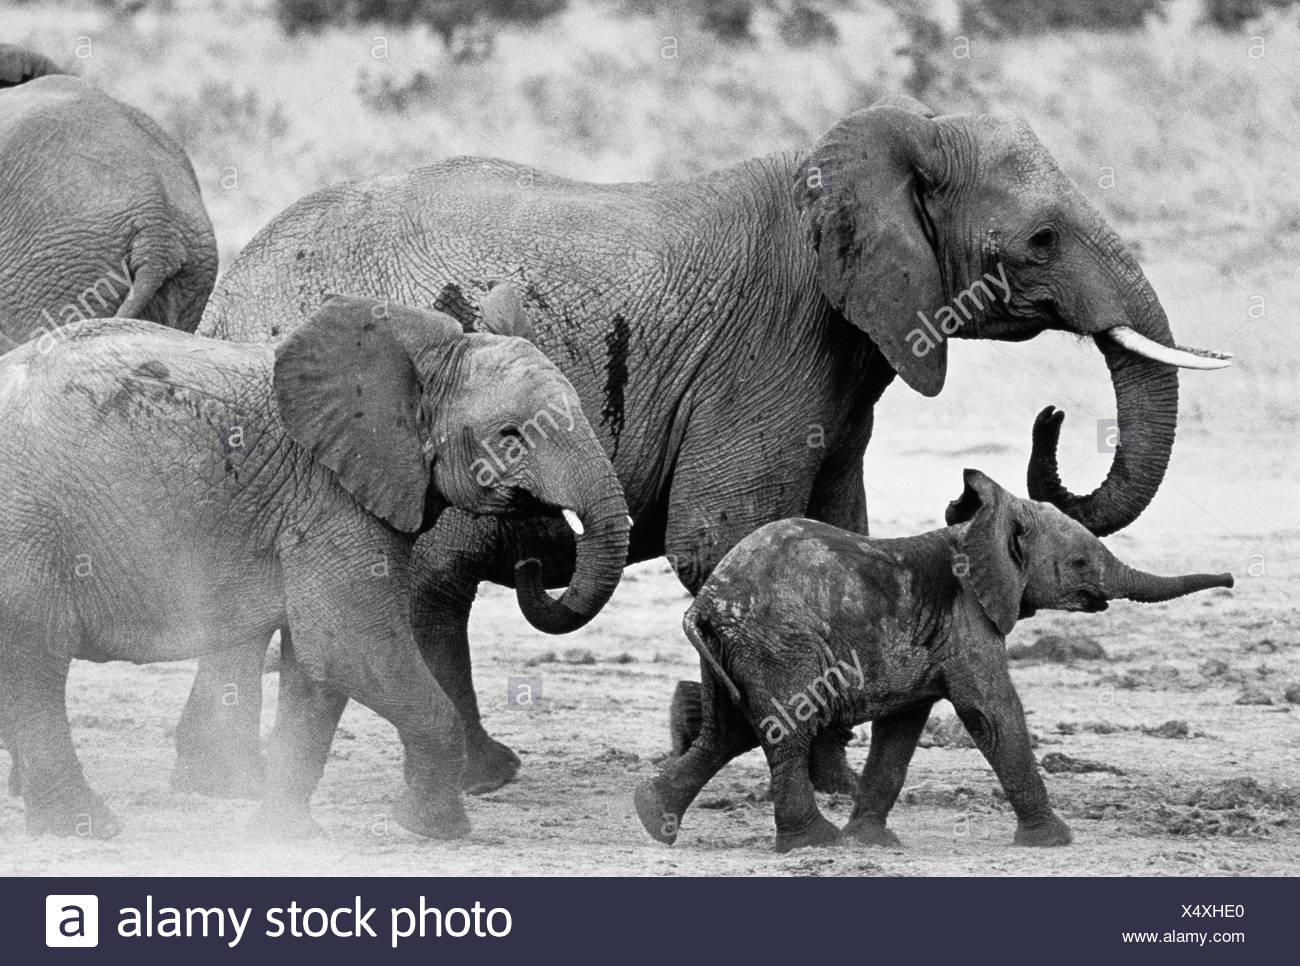 Elephant Family Walking in Mud Stock Photo